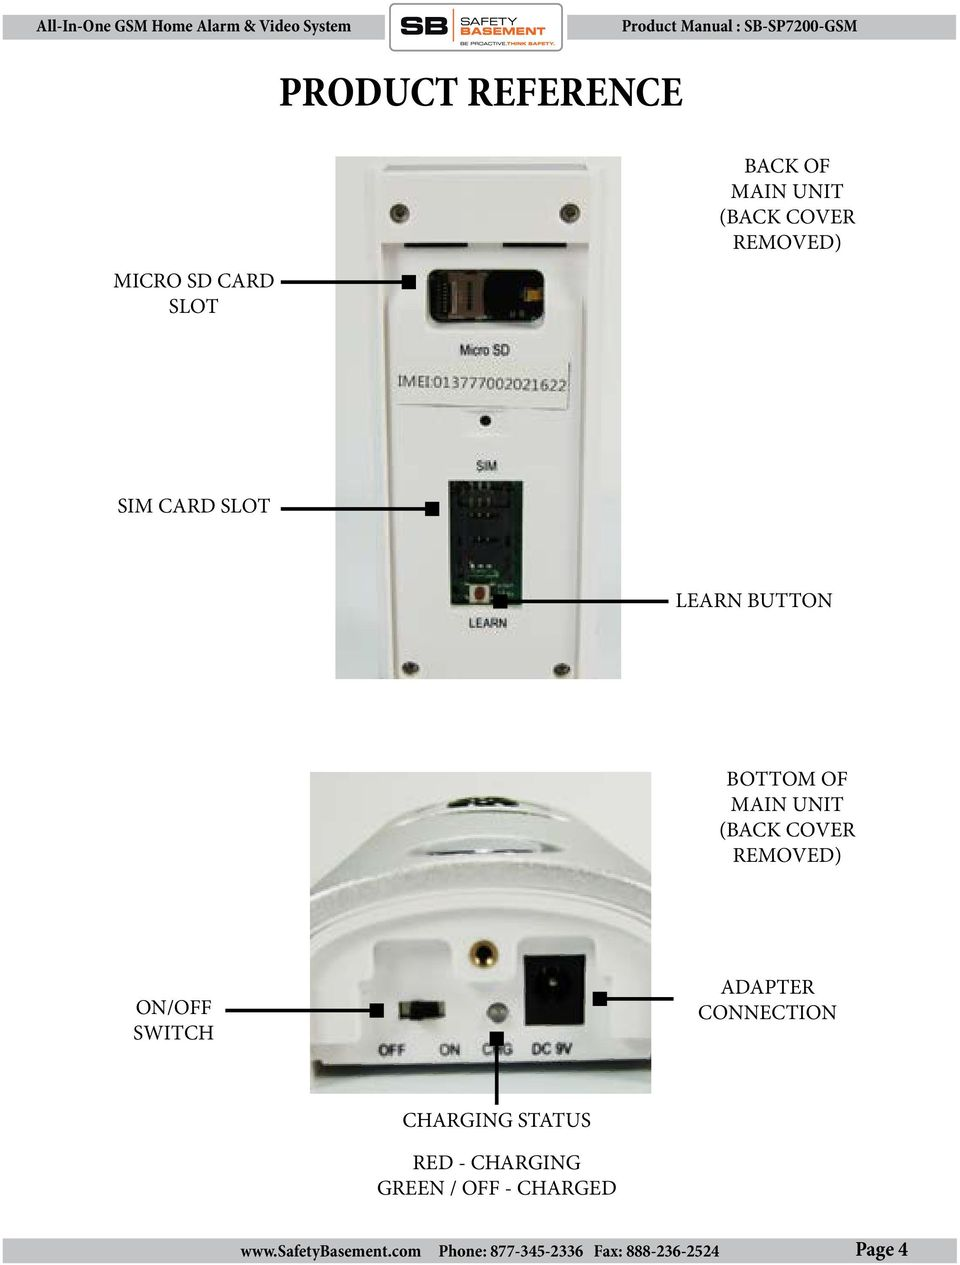 MAIN UNIT (BACK COVER REMOVED) ON/OFF SWITCH ADAPTER